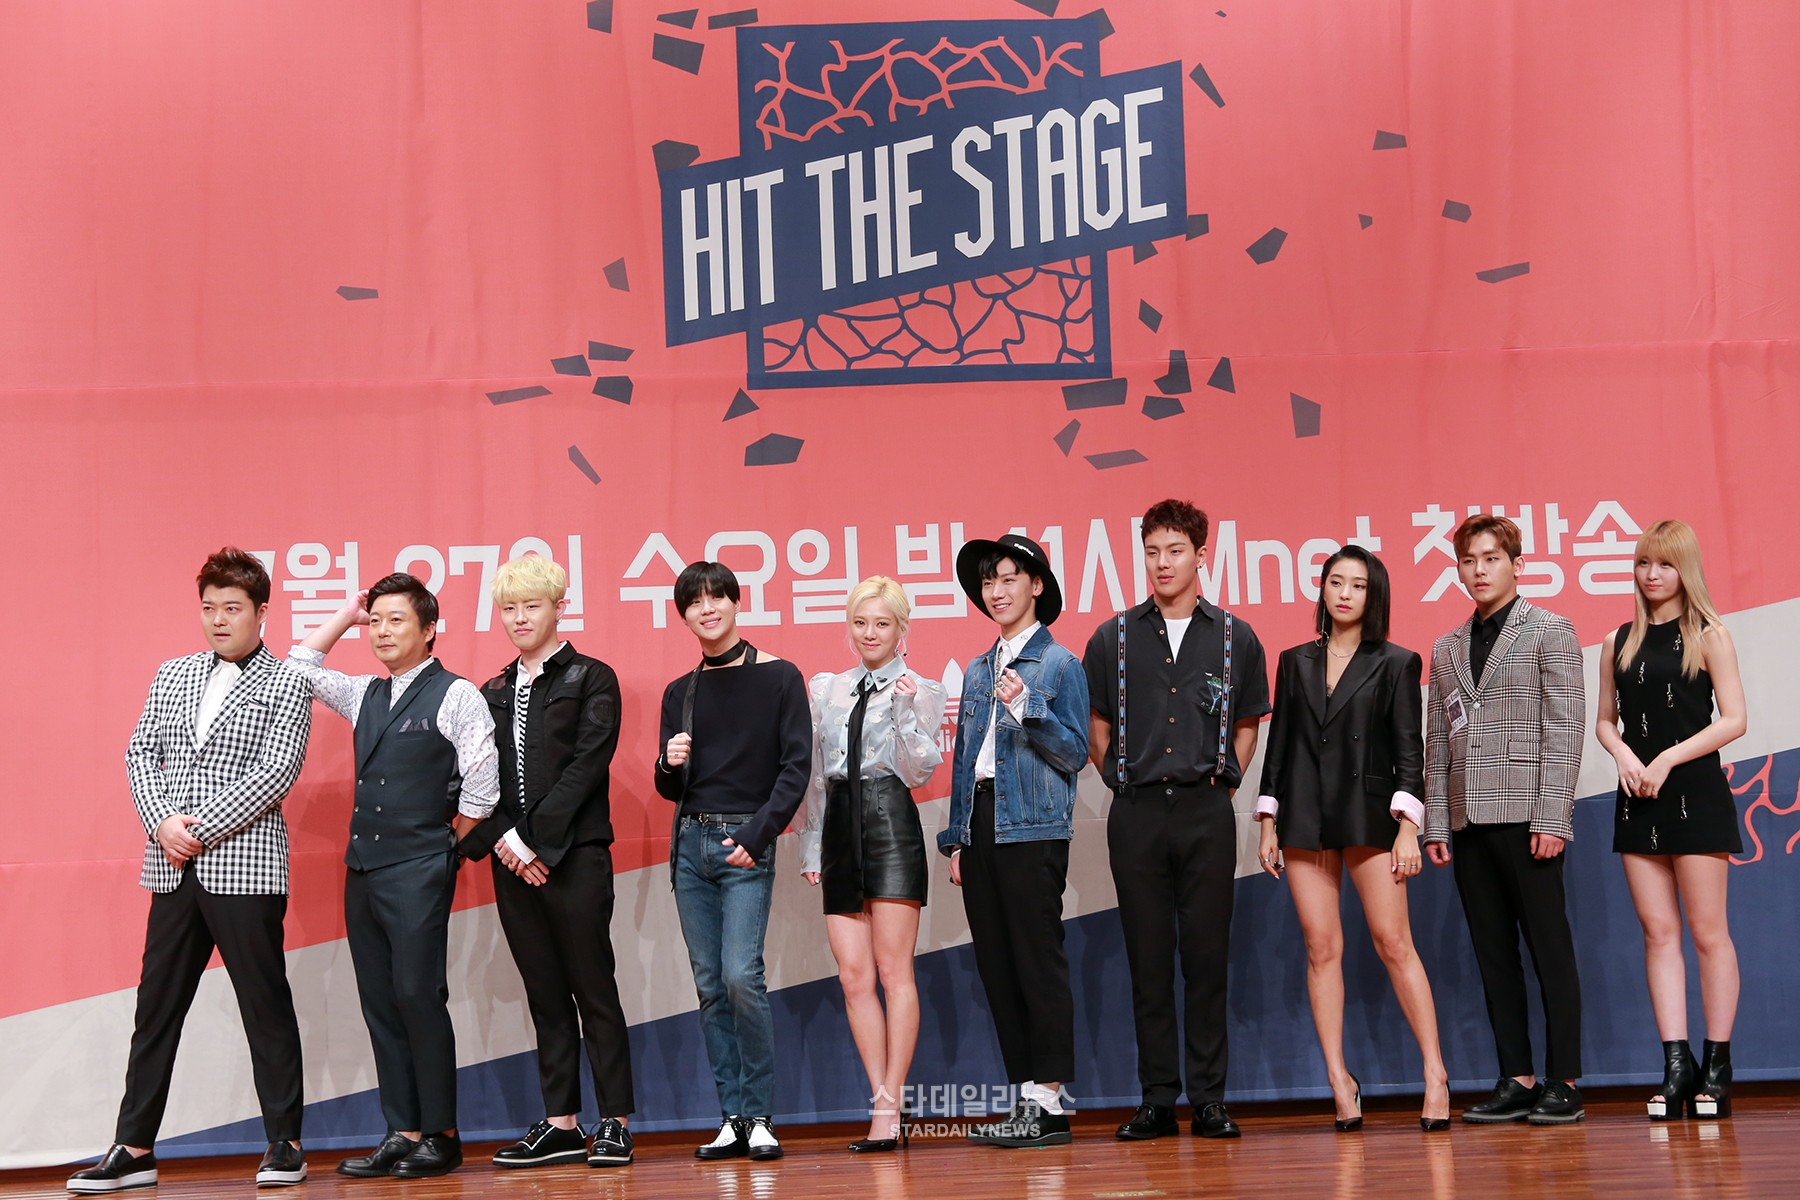 """Hit The Stage"" Contestants Focus on Members' Support And Aims For The Show"